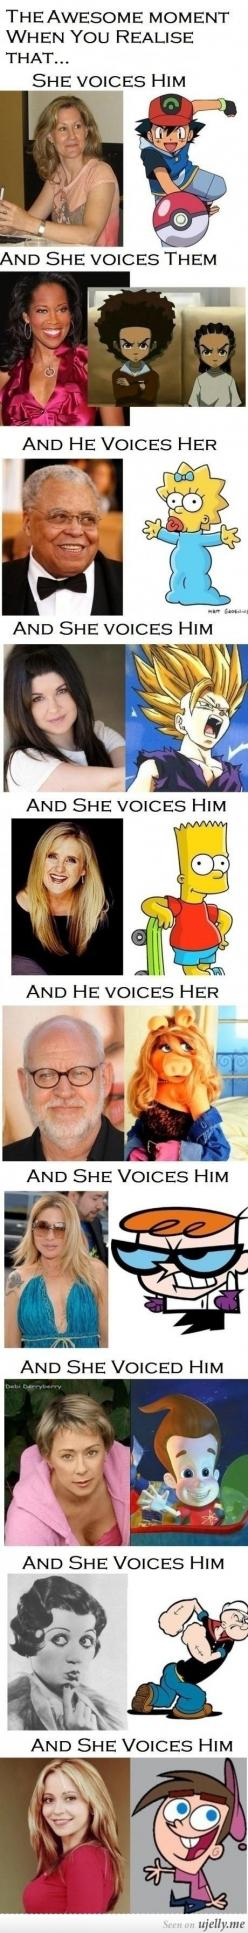 woah! i had no idea: Awesome Moment, Mind Blown, Stuff, Funny, Random, Funnies, Things, Voice Actors